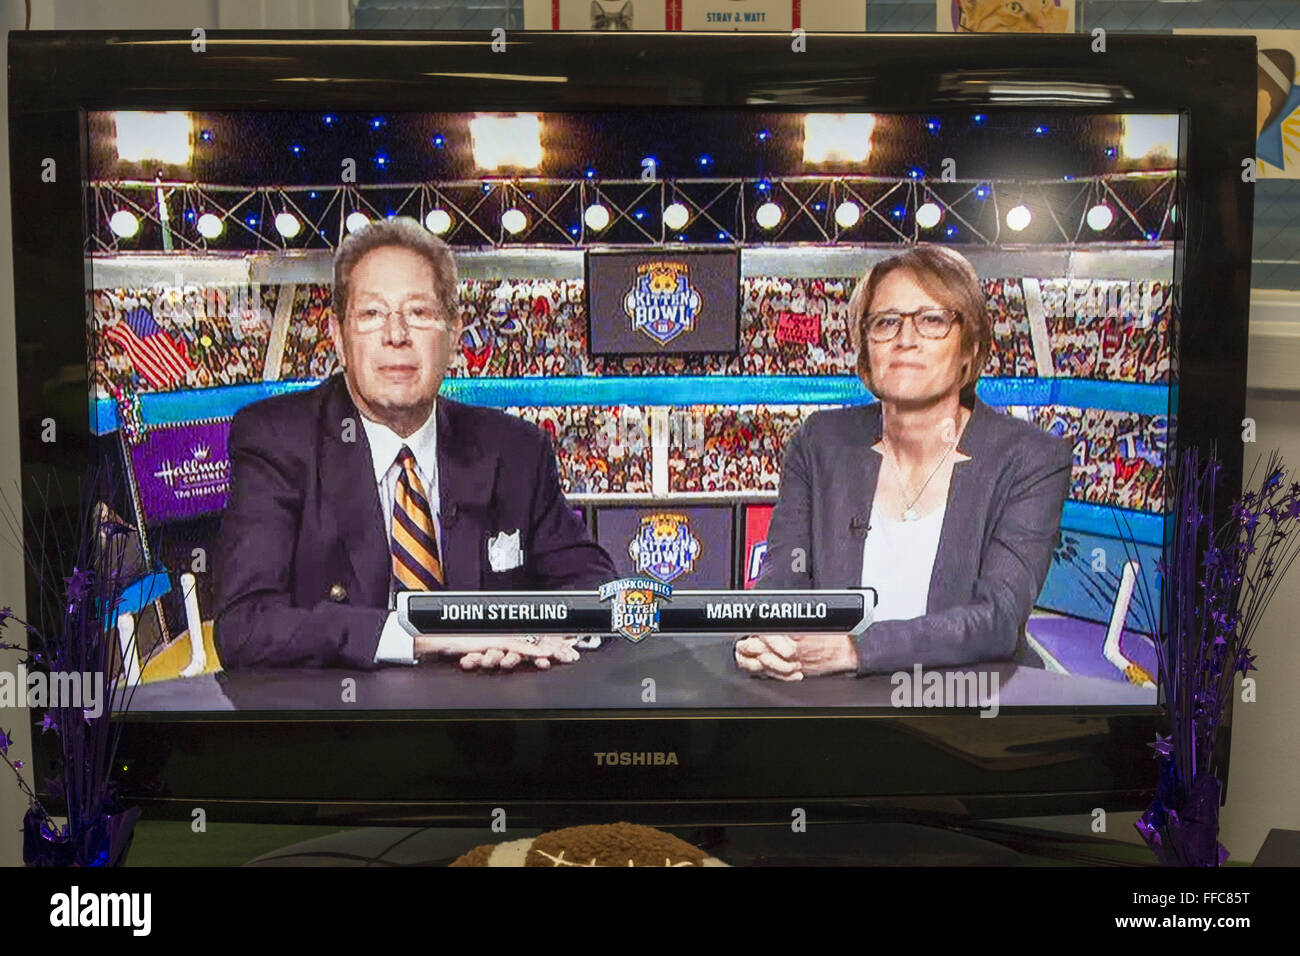 Wantagh, New York, USA. 7th Feb, 2016. Sports commentators JOHN STERLING and MARY CARILLO give play-by-play commentary - Stock Image